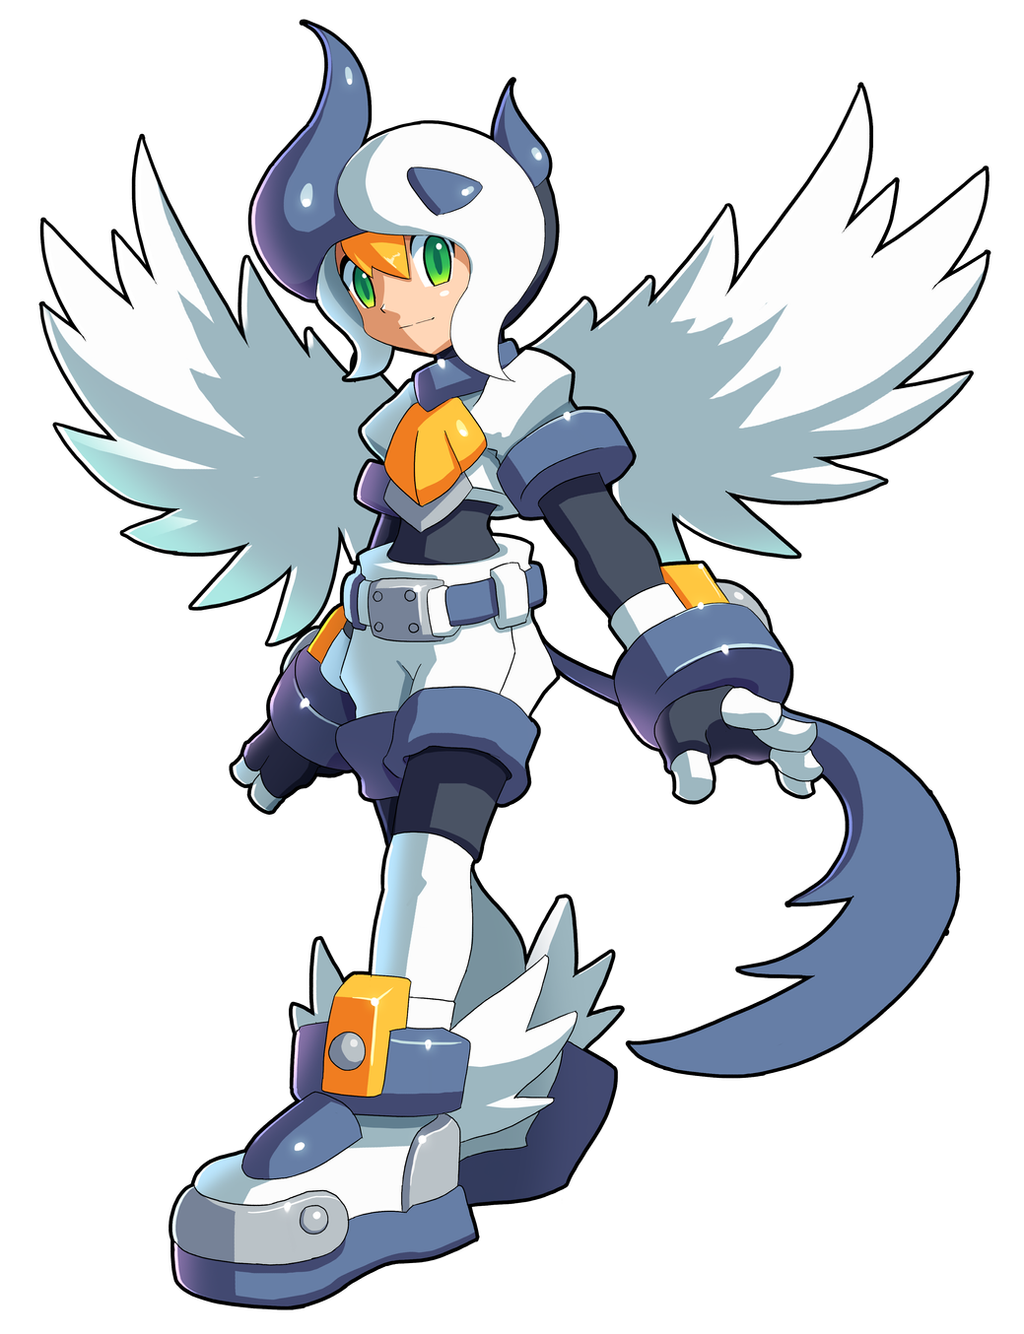 Roll [Legends] - (Fusion) - Absol [With helmet] by V-a-a-N